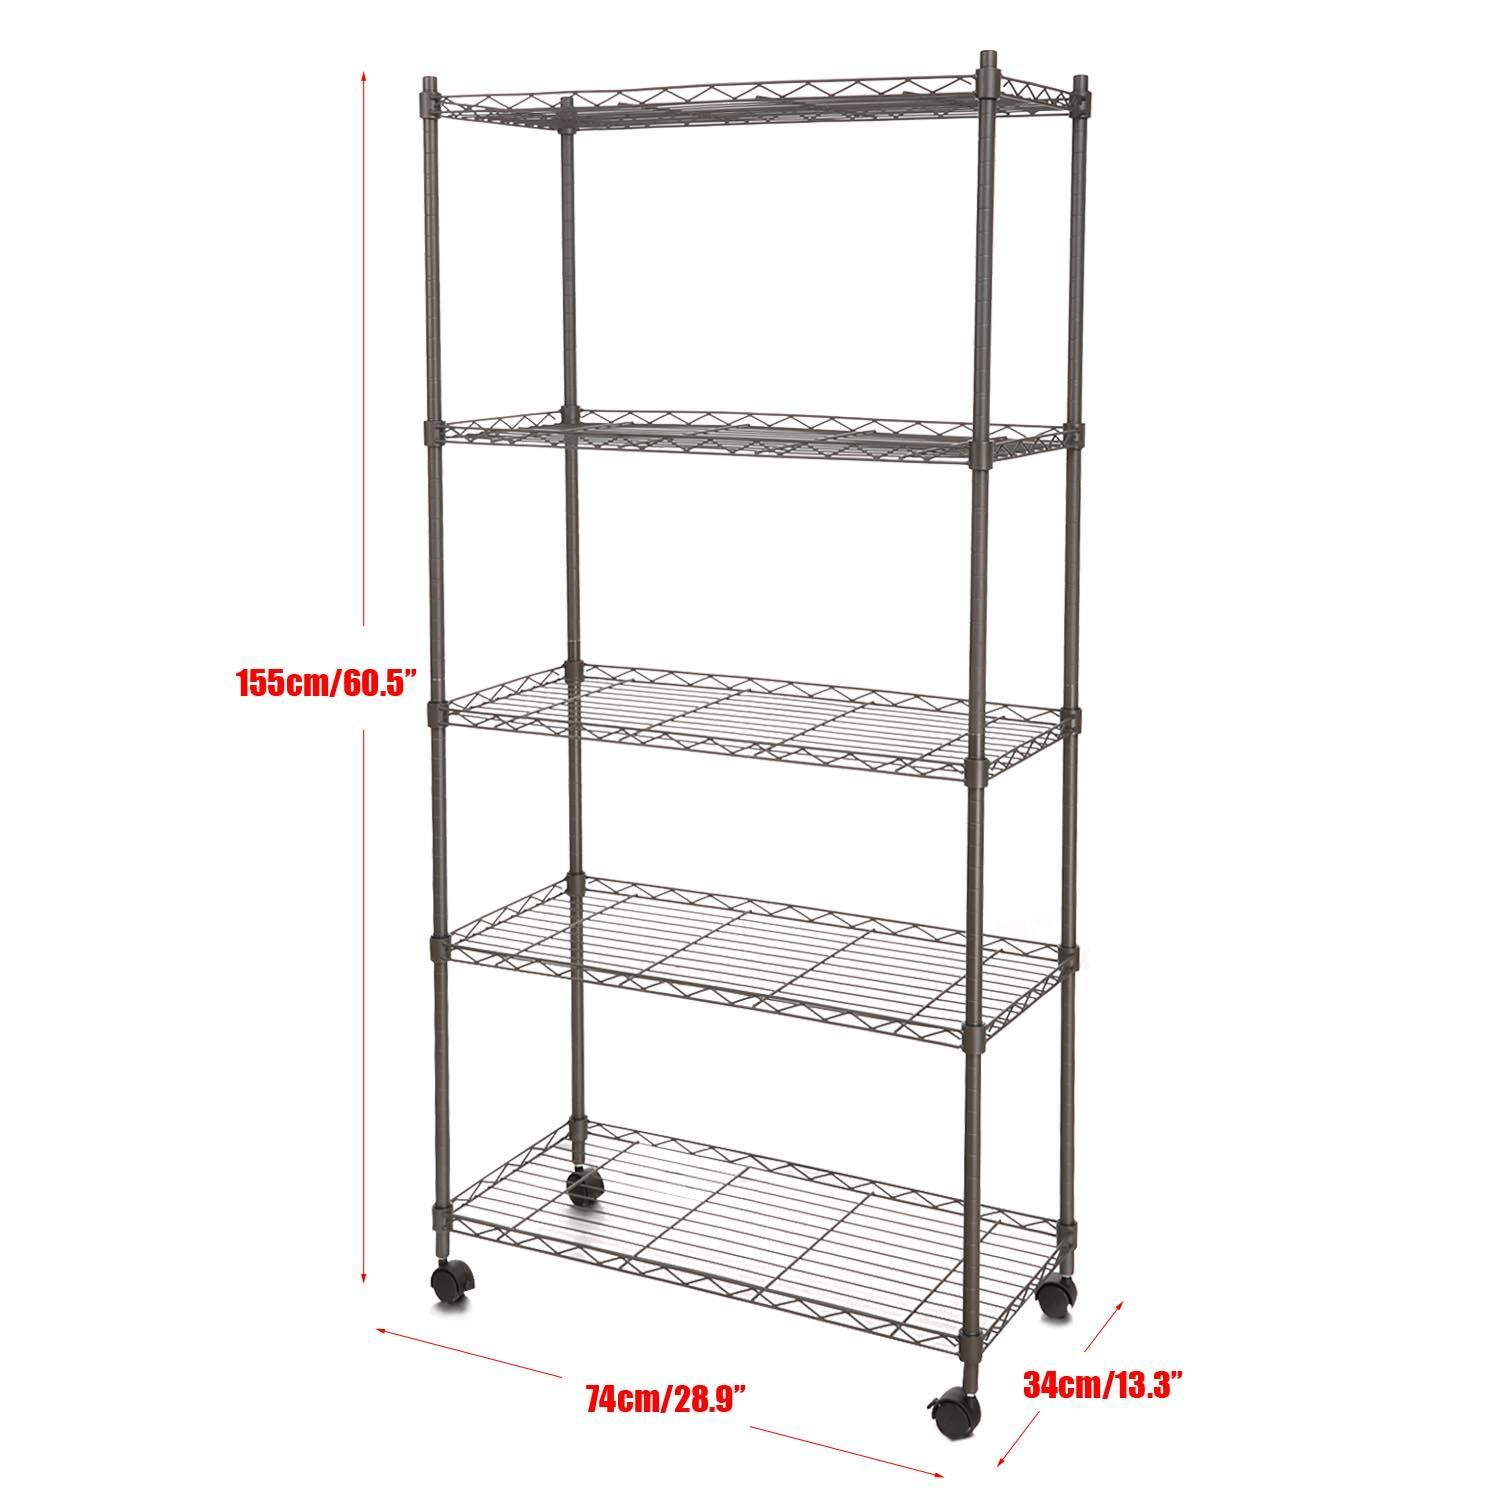 Unbranded Classic 5 Tier Wire Shelving Rack Shelves with Wheels shelving units BYE